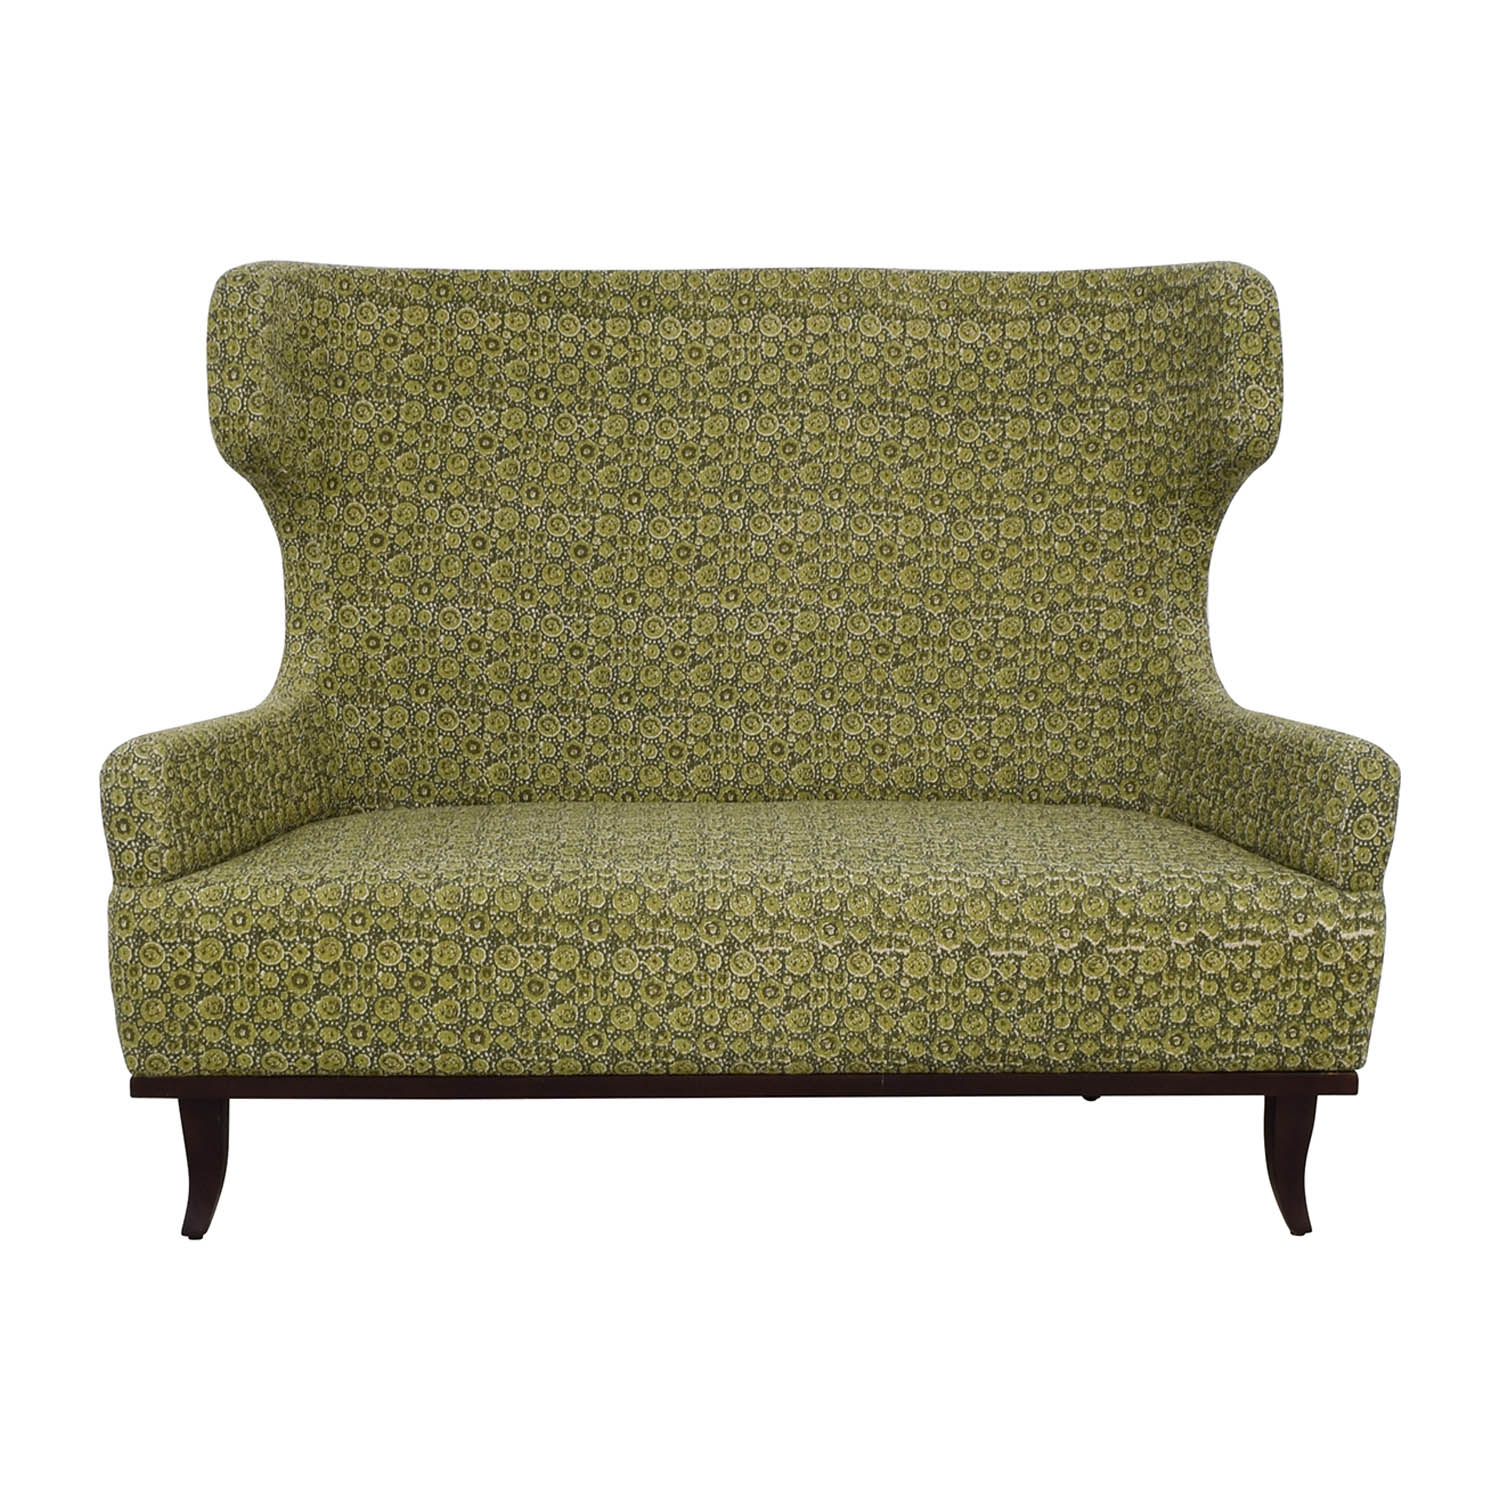 Manor and Mews Manor and Mews James Multi Green Patterned Settee coupon